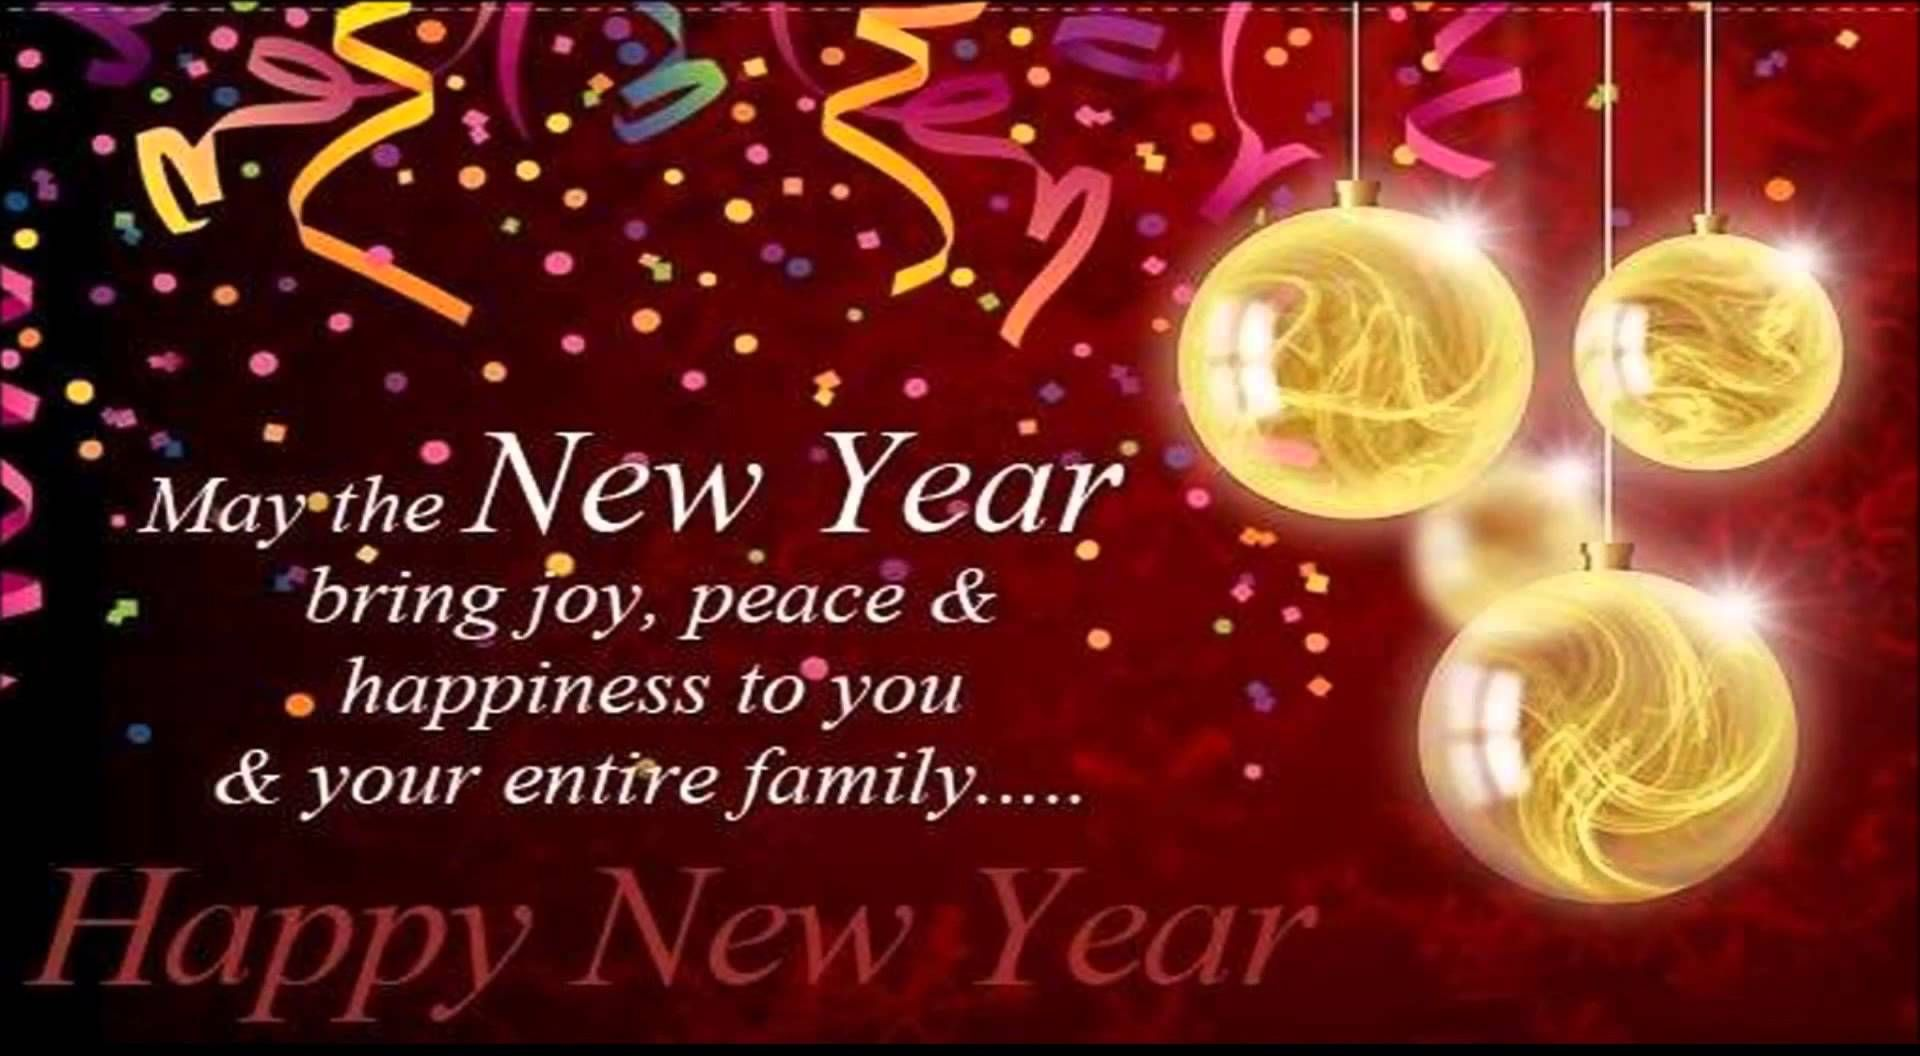 happy new year greetings 2019 to make sure your loved ones receive all your love and best wishes on this auspisious occasion we have rounded up